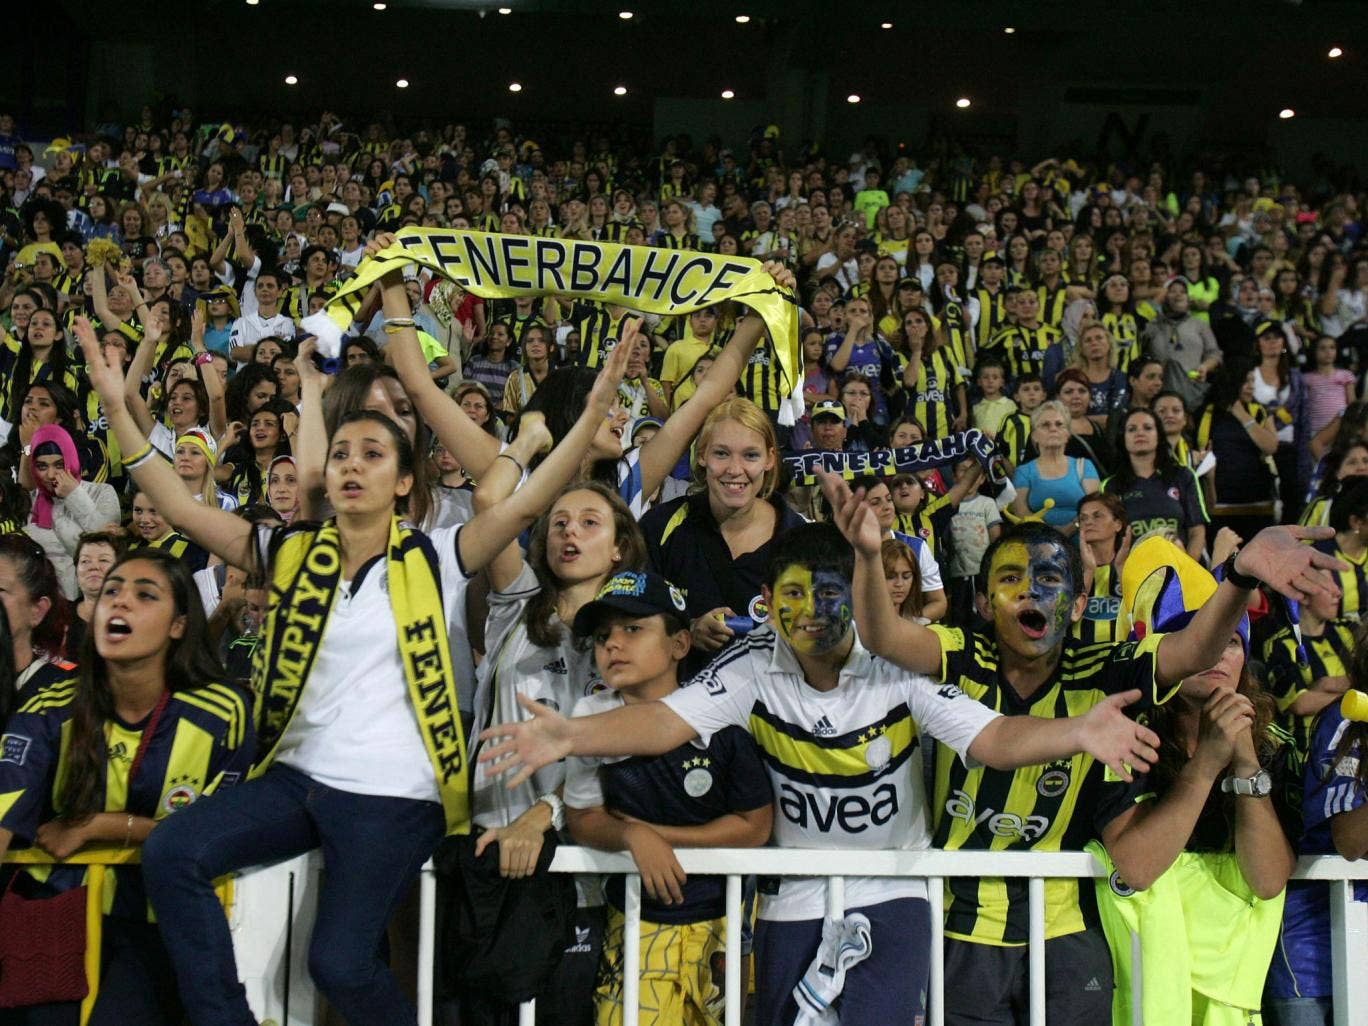 Fenerbahce fans know first-hand the dangers of match-fixing after their team was kicked out of the Champions League this season